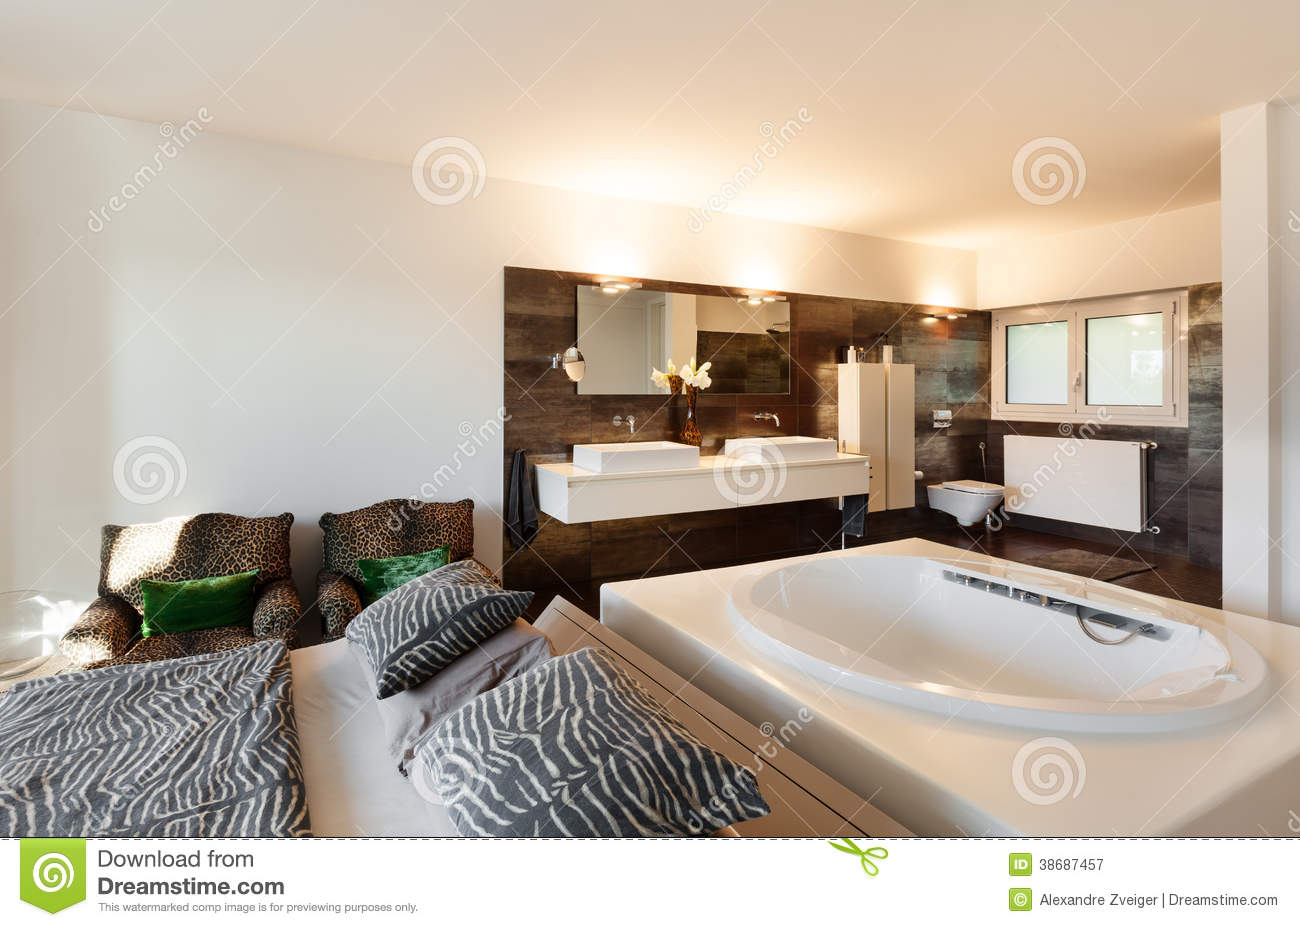 Beautiful house royalty free stock photography image for Beautiful mansions interior bedrooms